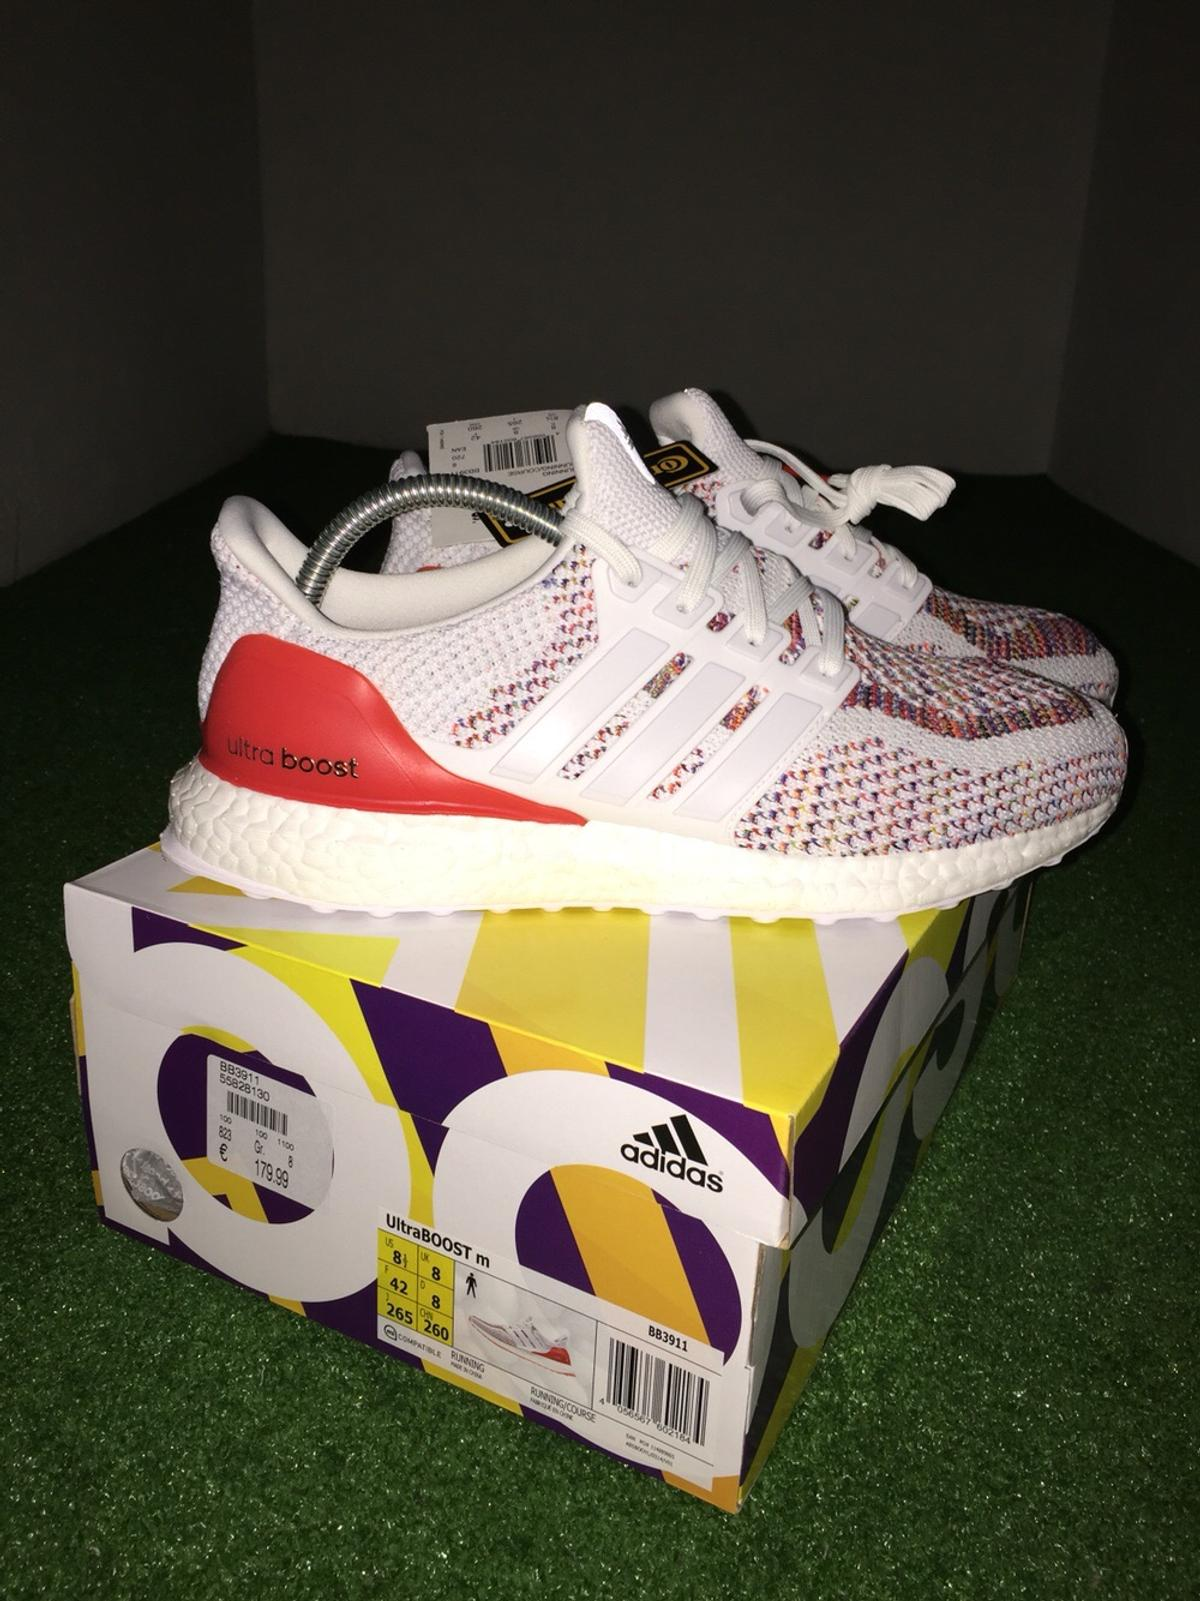 Adidas Adidas Boost Ultras Boost Ultras Multicolor Yb67vfgy